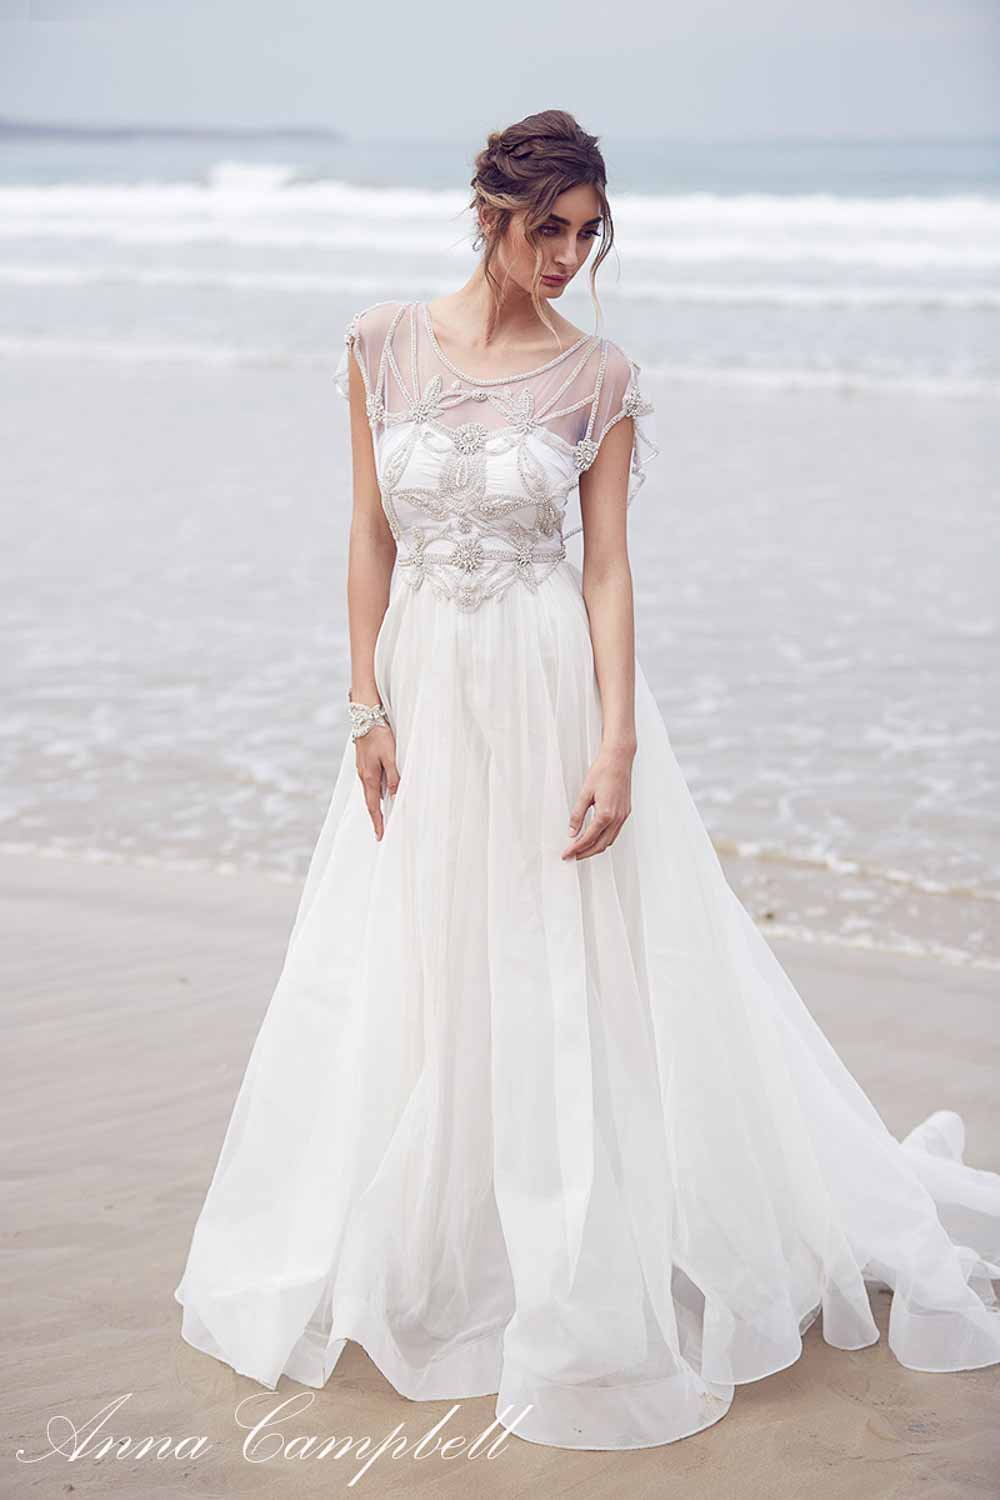 Anna Campbell Spirit Collection Wedding Dress 21